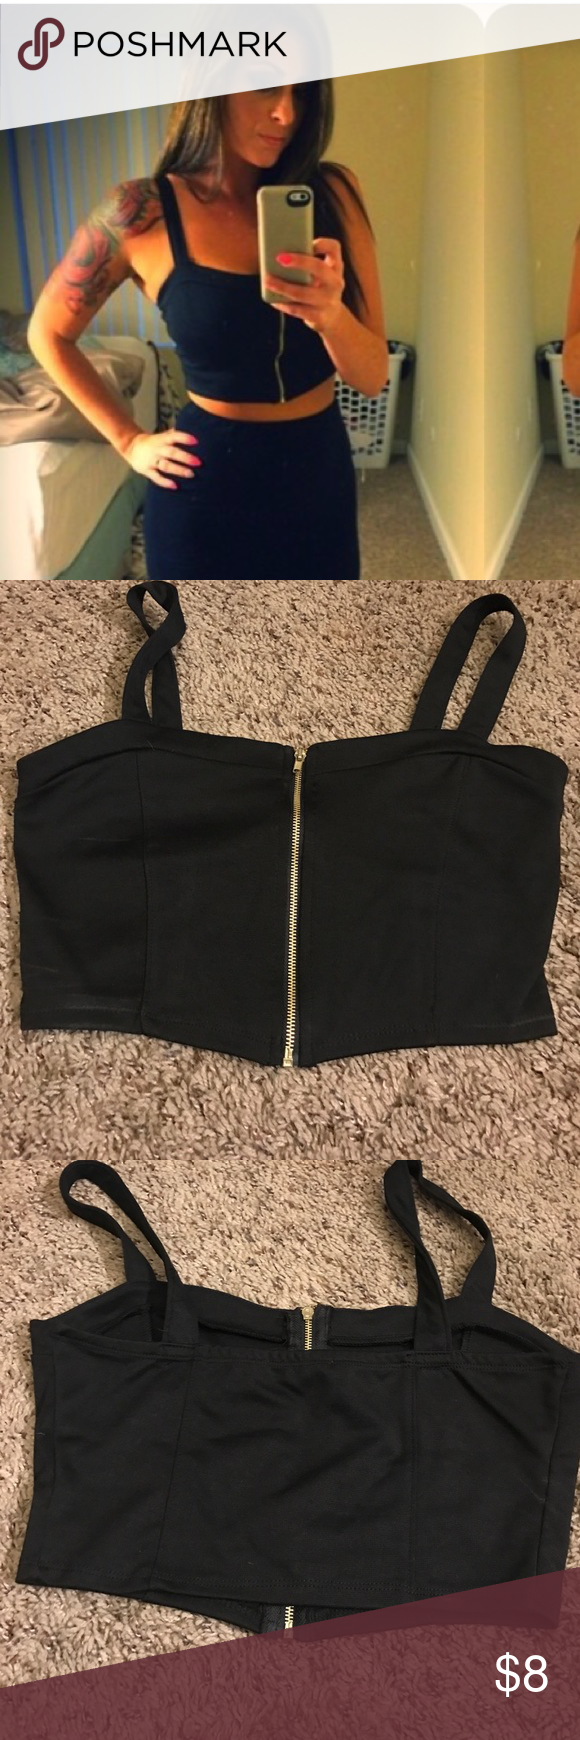 Black crop top Crop top from papaya worn once. Good condition size medium. Missguided Tops Crop Tops